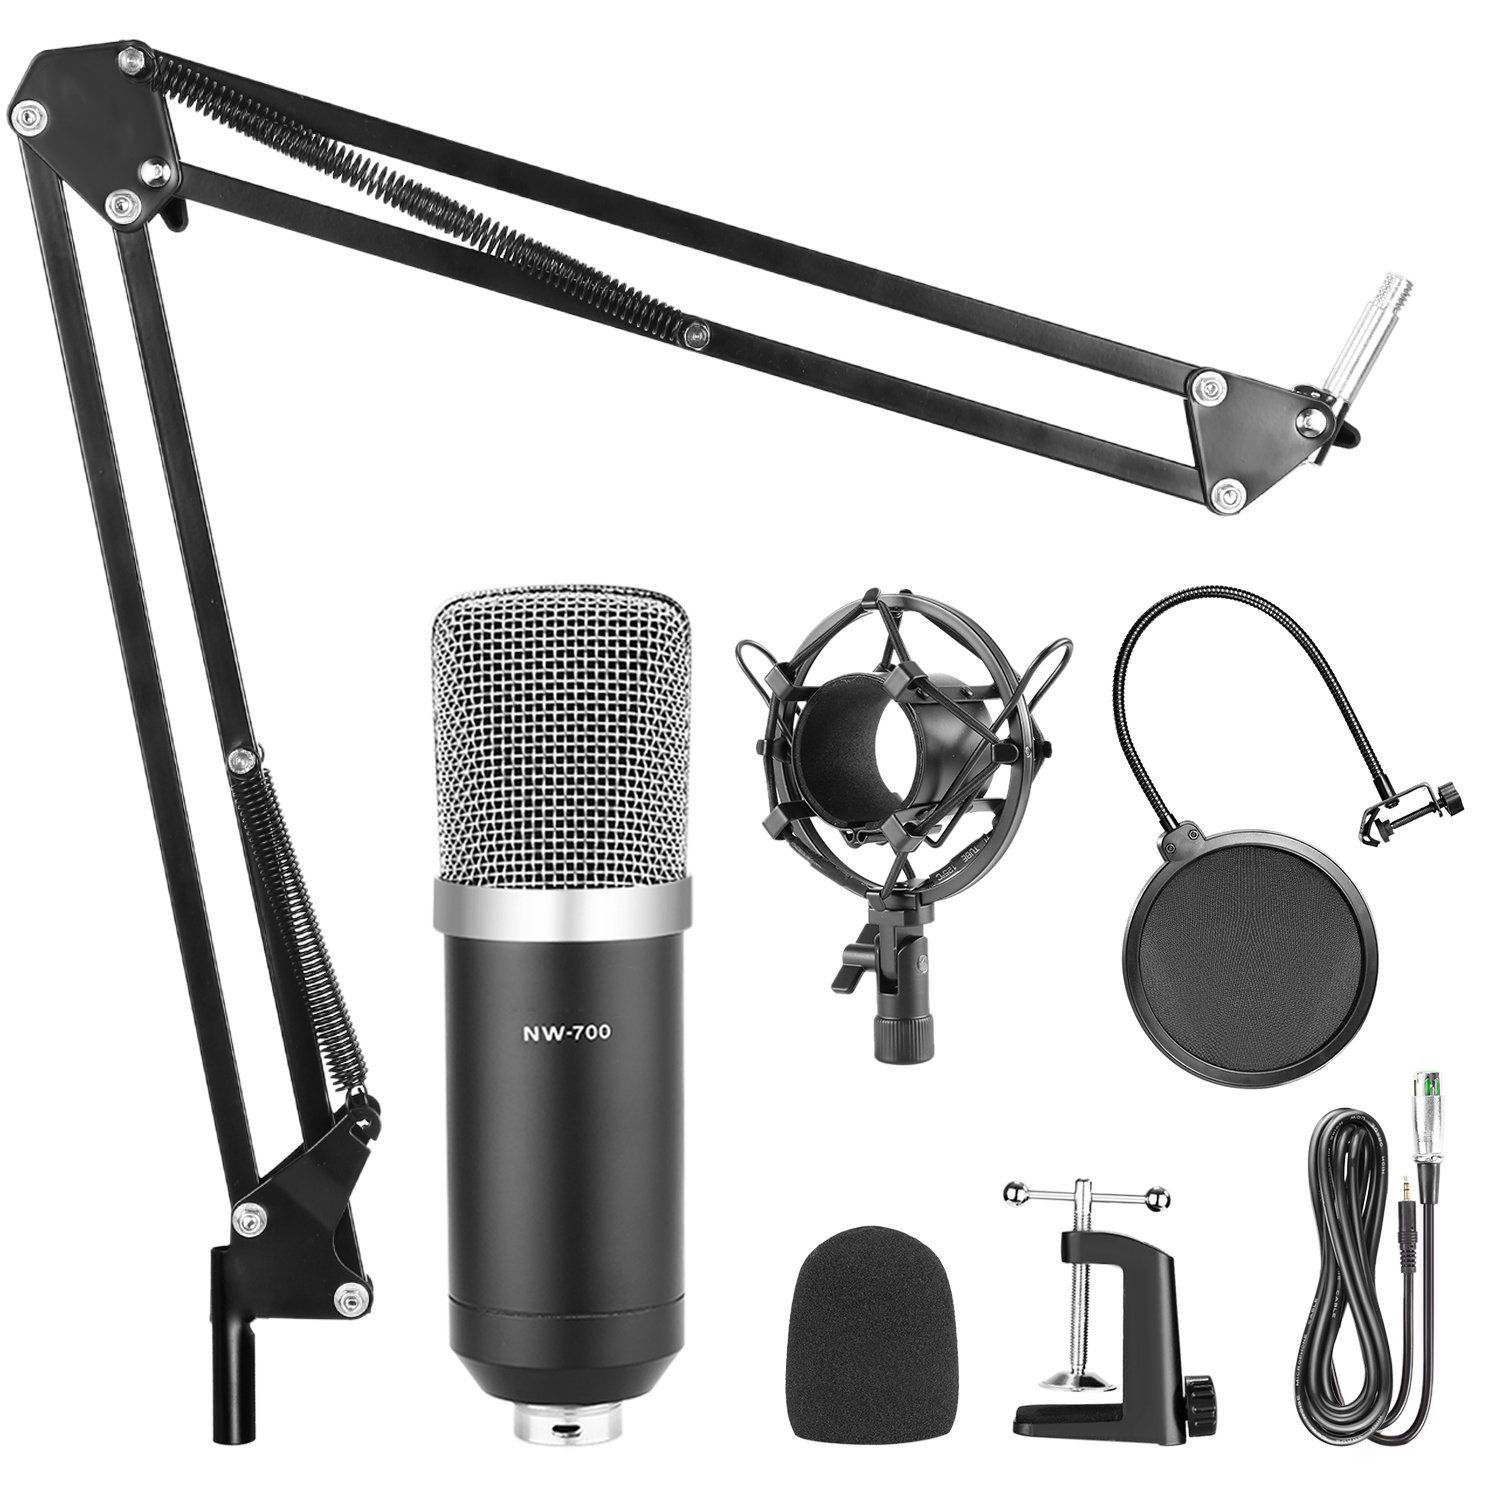 Specialized Studio Broadcasting Recording Condenser Microphone Kit With Stand And Shock Mount For Radio Braodcasting Recording